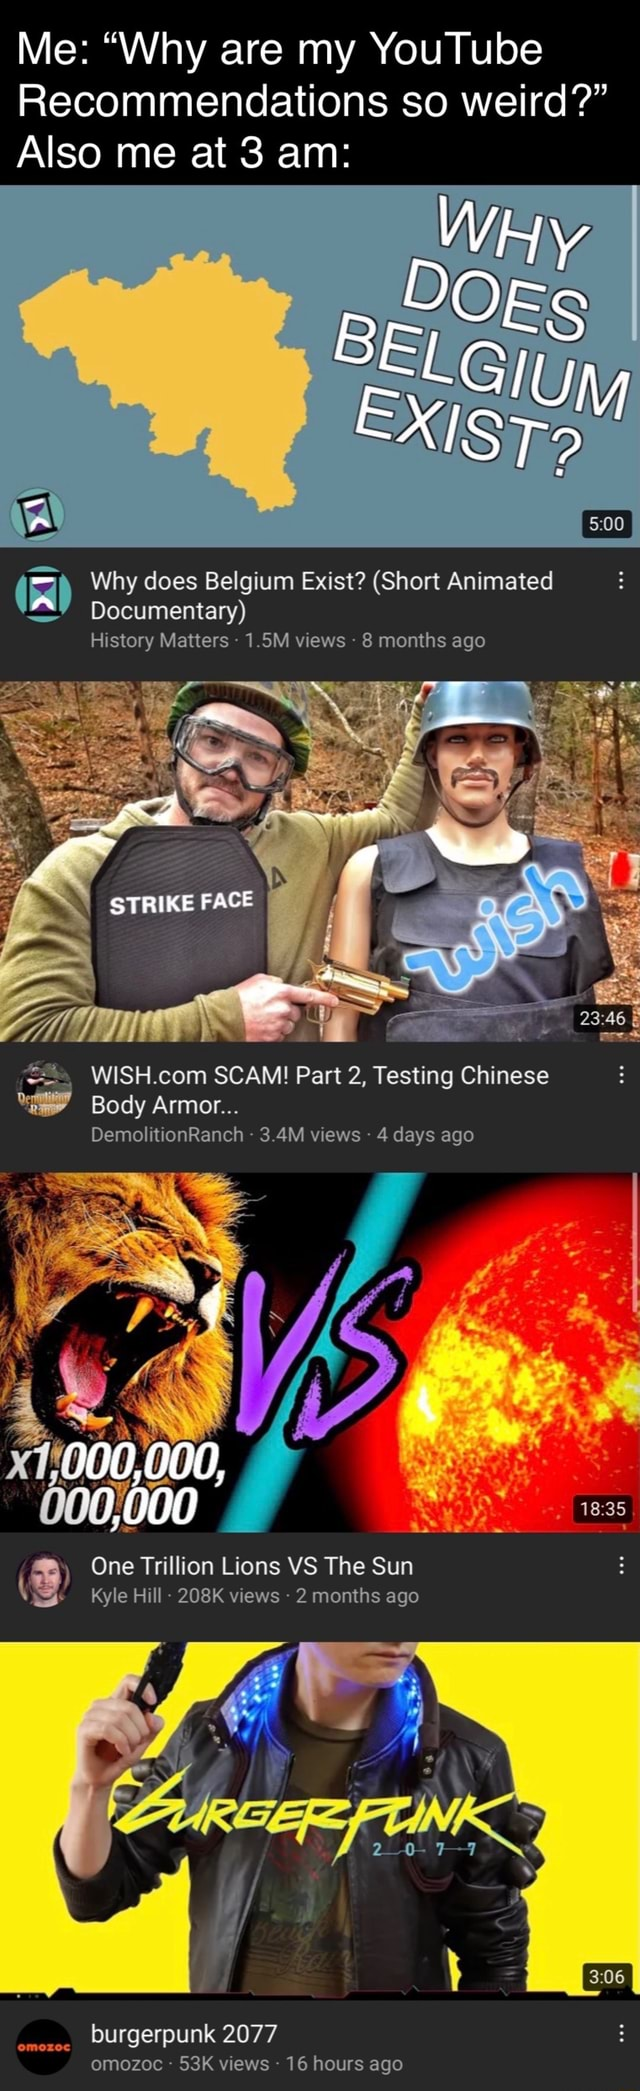 Me Why are my YouTube Recommendations so weird Also me at 3 am Why does Belgium Exist Short Animated Documentary History Matters 1.5M views 8 months ago STRIKE FACE SCAM Part 2, Testing Chinese Body Armor DemolitionRanch 3.4M views 4 days ago 900,000, One Trillion Lions VS The Sun Kyle Hill 208K views 2 months ago burgerpunk 2077 omozoc views 16 hours ago omozoc meme